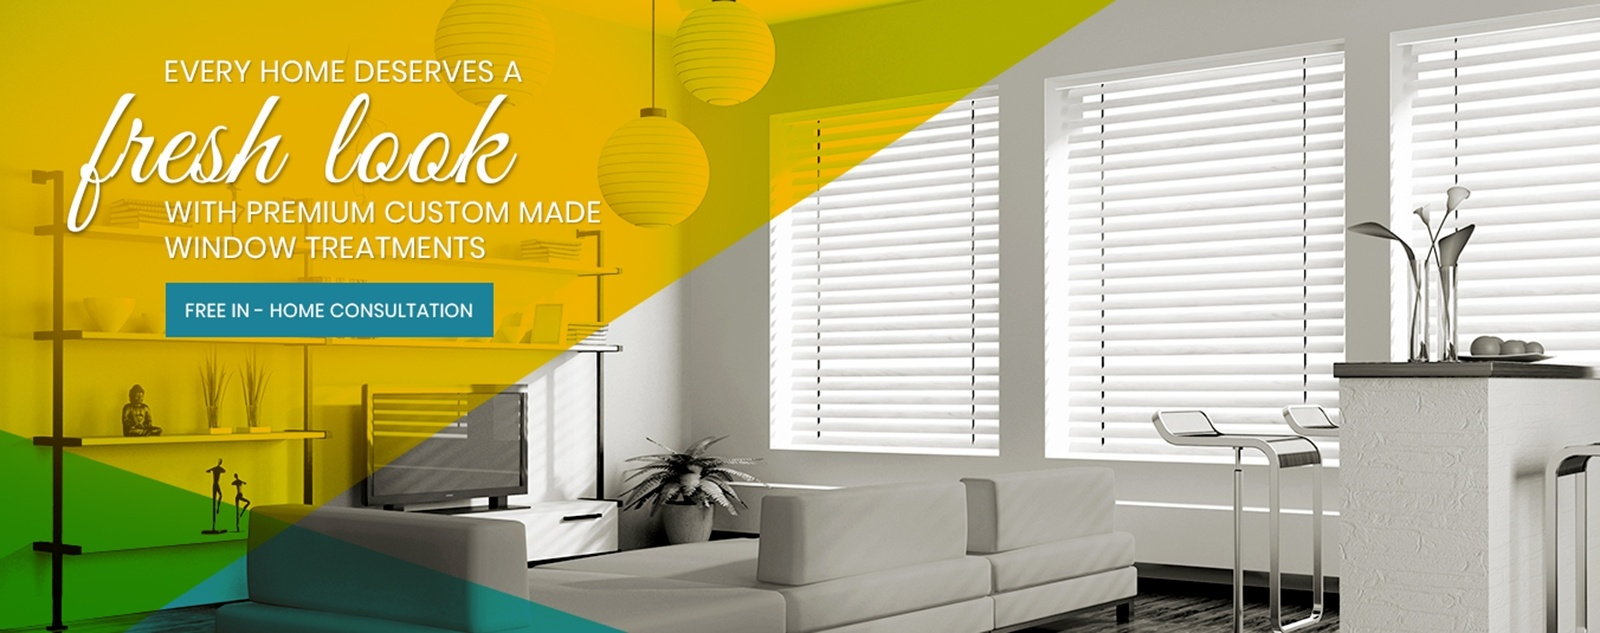 Every home deserves a fresh look with premium custom made window treatment